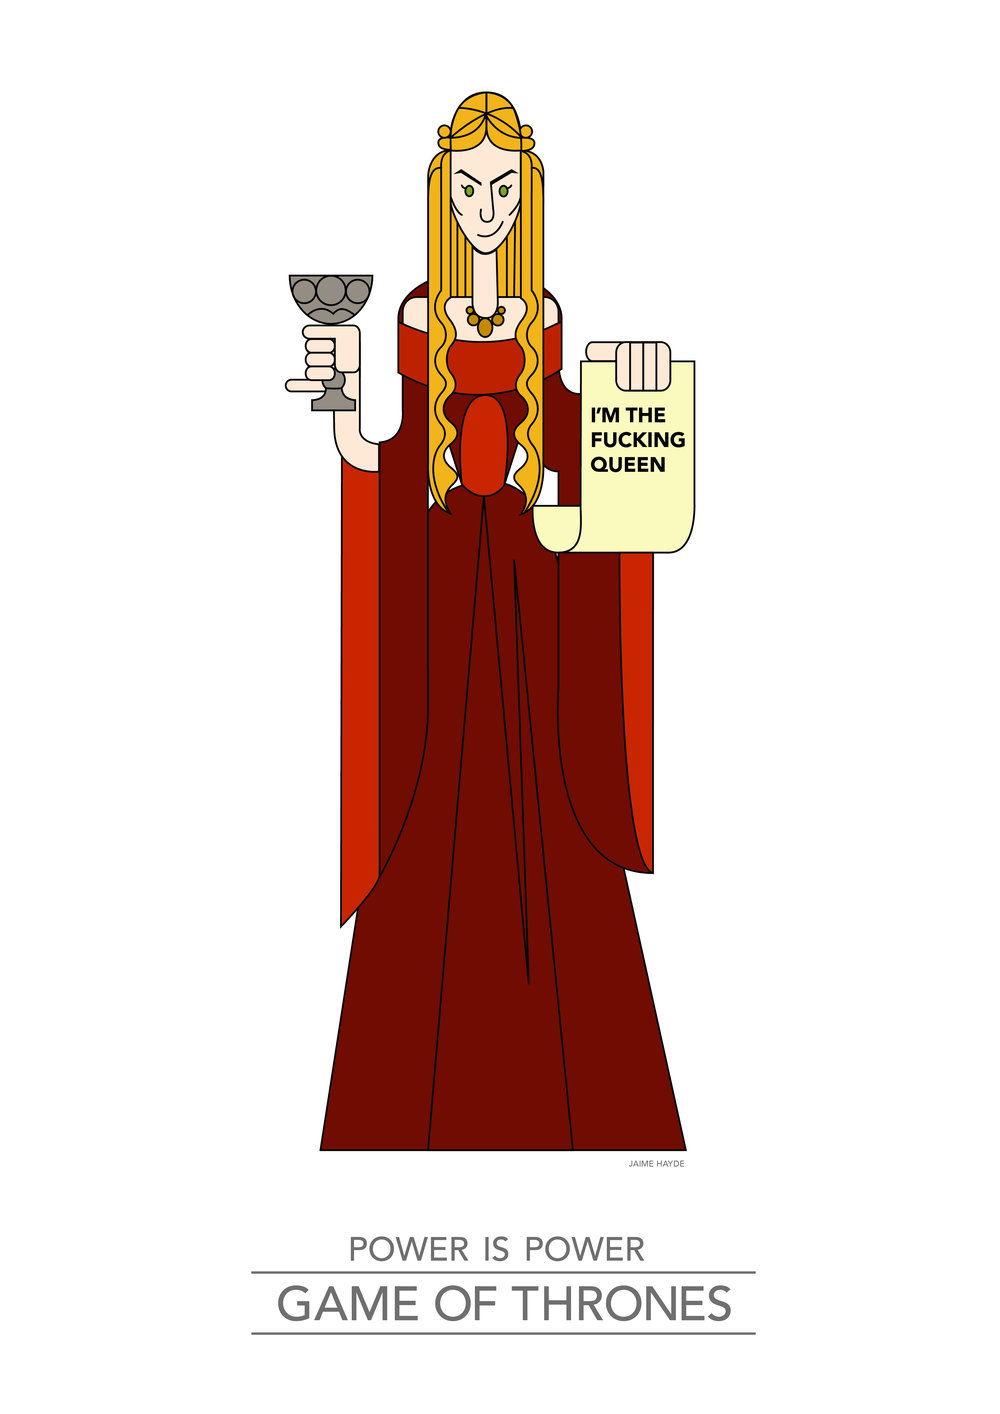 Game-of-thrones-Juego-de-tronos-Cersei.jpg